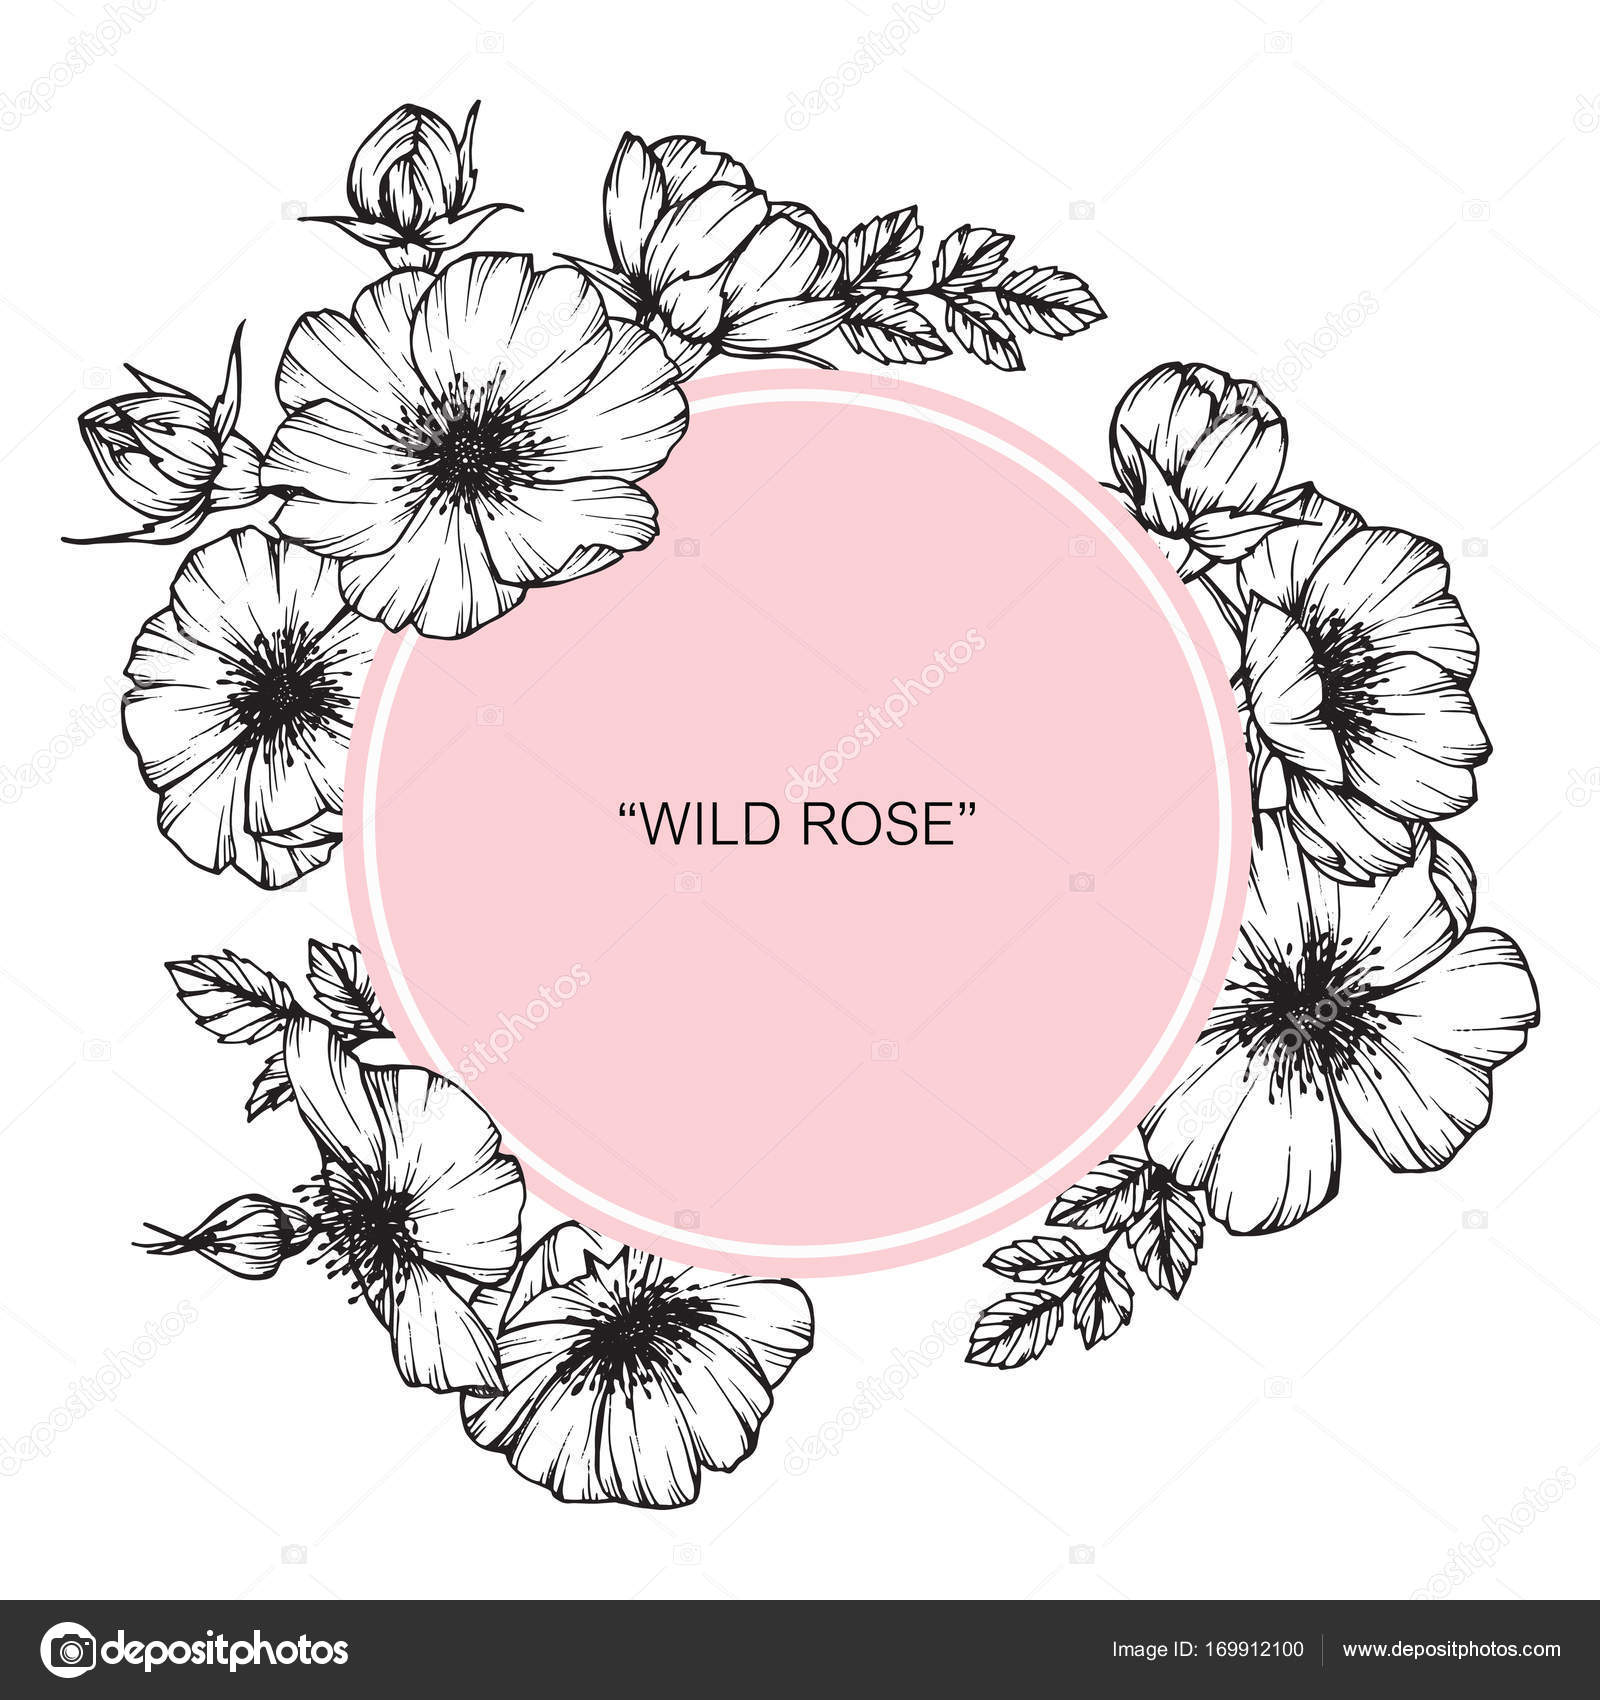 1600x1700 Wild Rose Flower Frame. Drawing And Sketch With Black And White